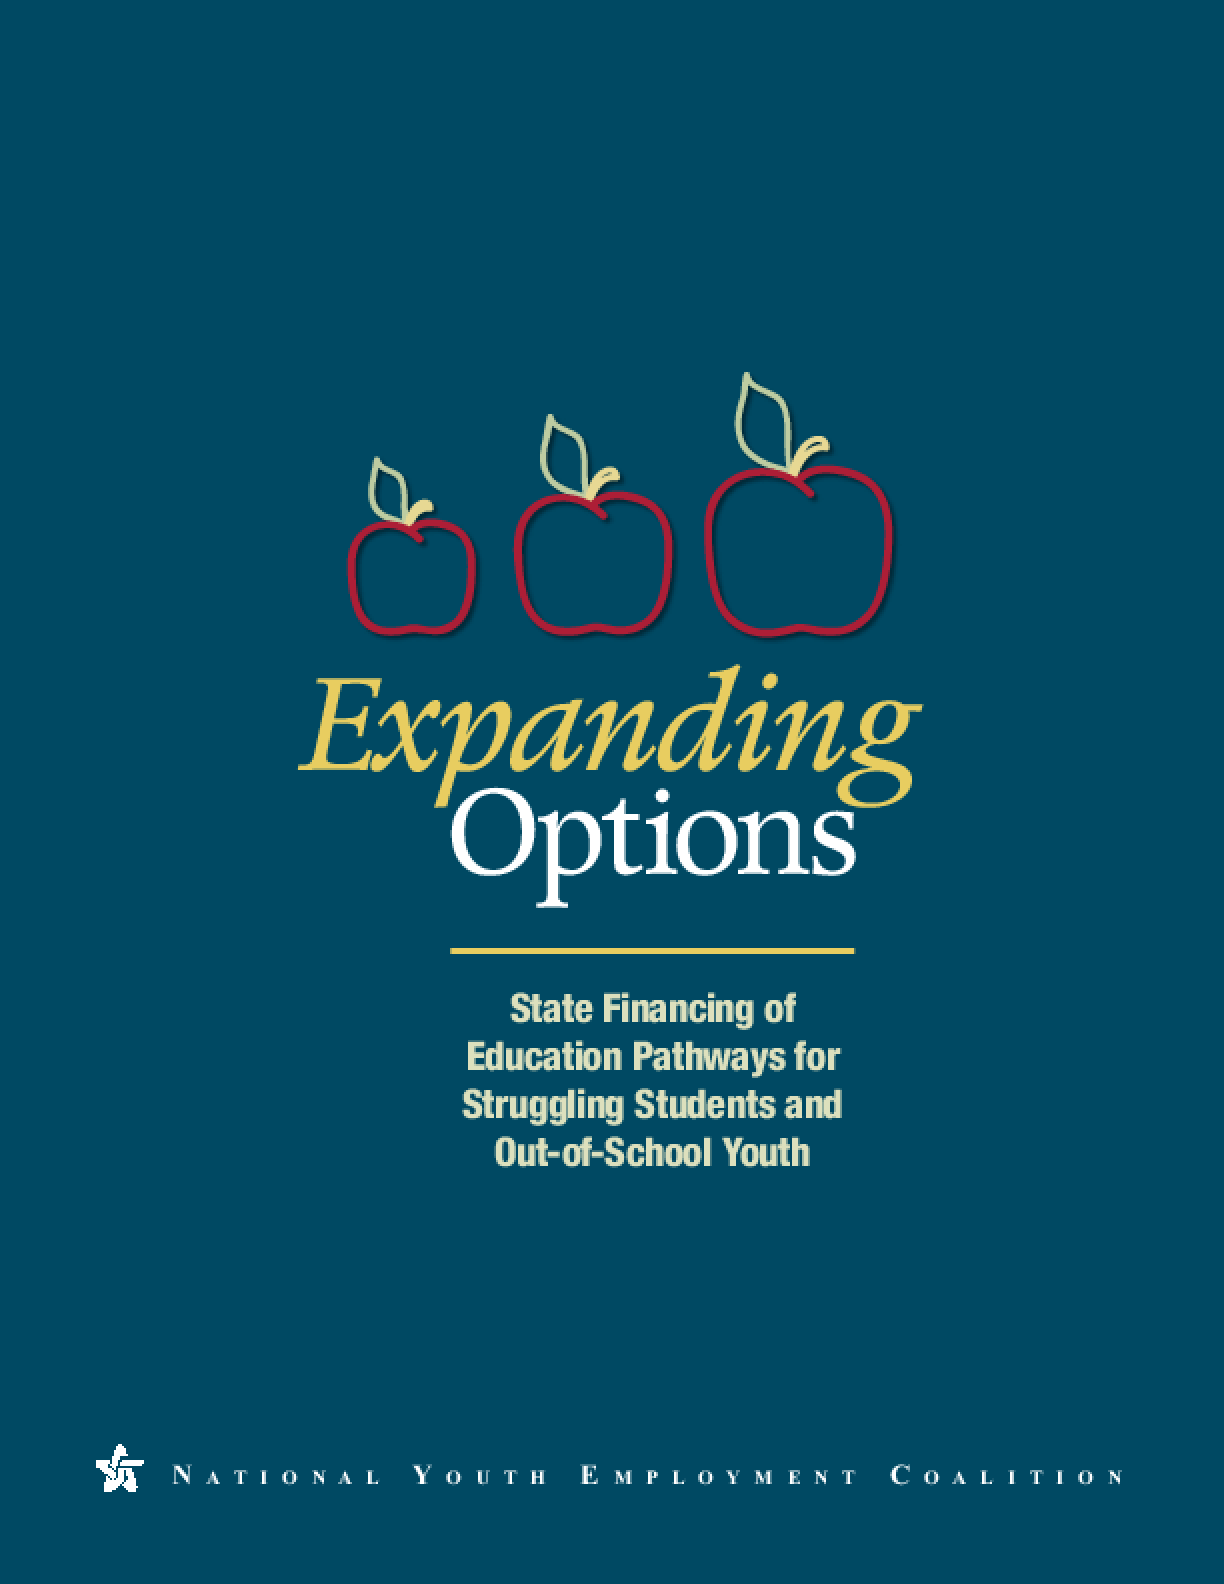 Expanding Options: State Financing of Education Pathways for Struggling Students and Out-of-School Youth - Indiana